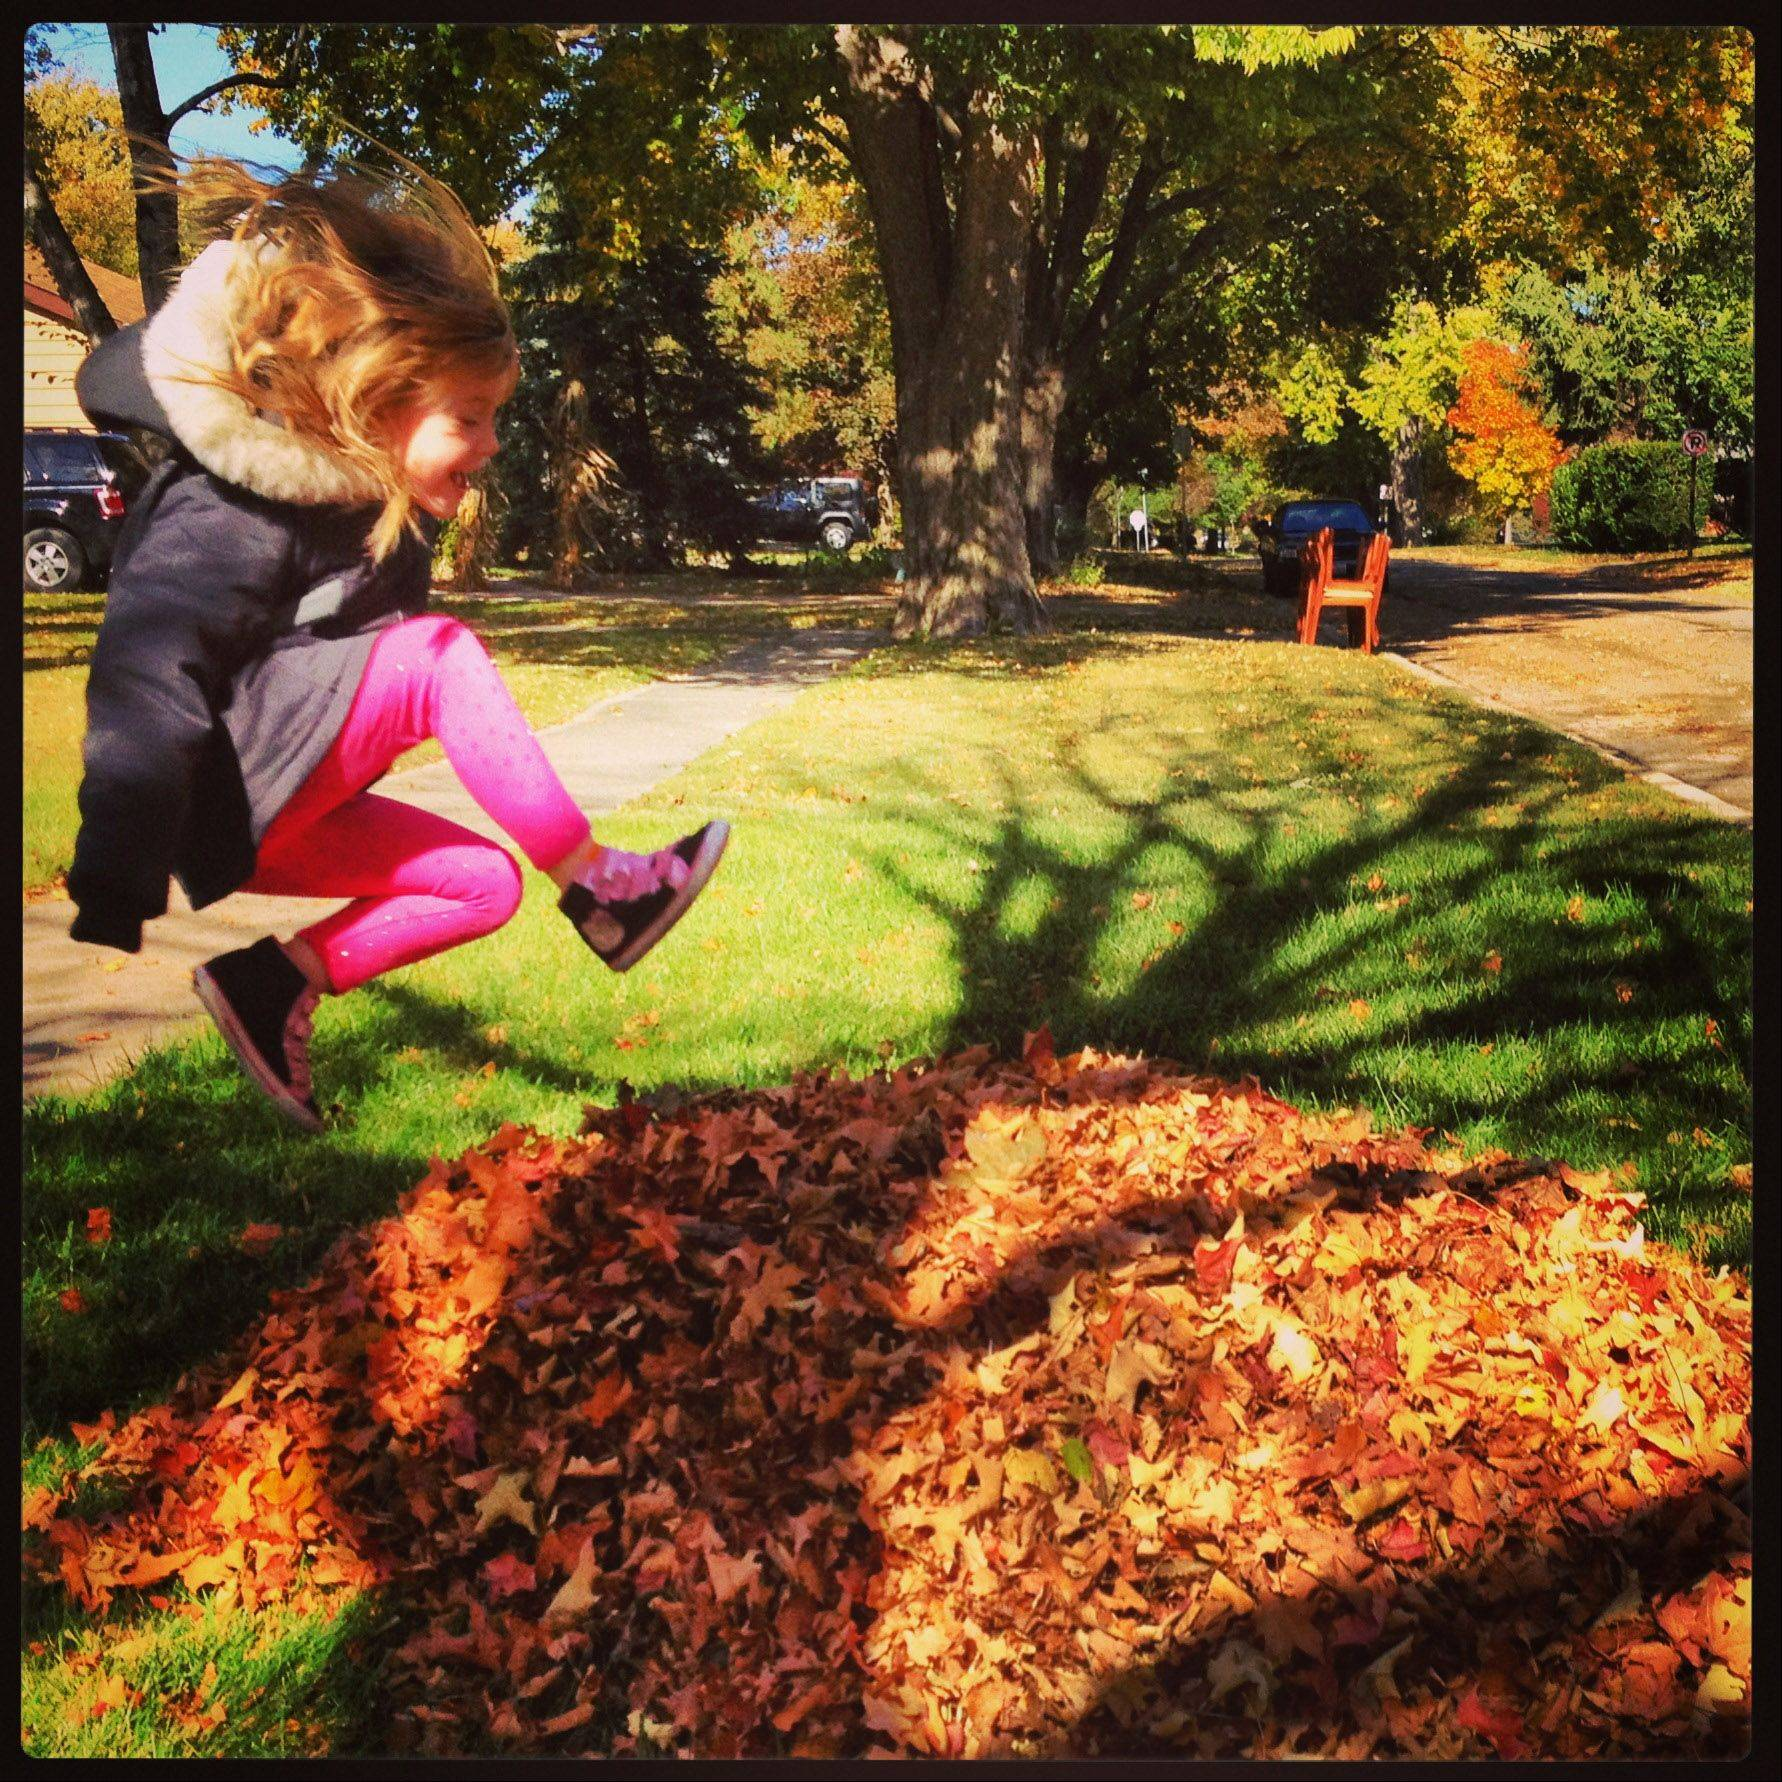 This photo was taken in our yard on Sunday, October 20 of my daughter jumping into the freshly raked leaves.